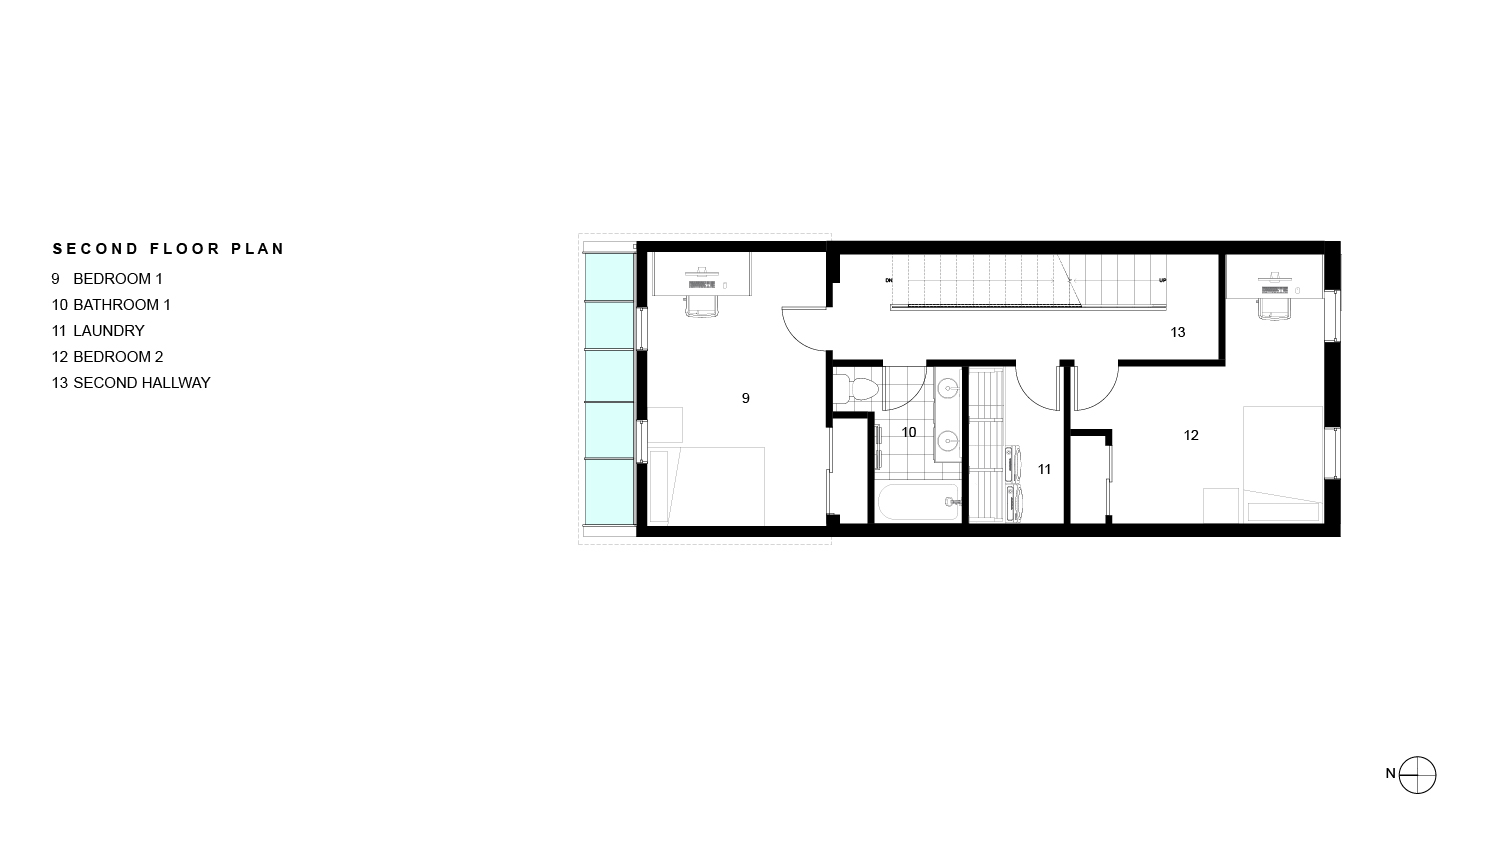 RPA Sabatino 17th Second Floor Plan 010318 01